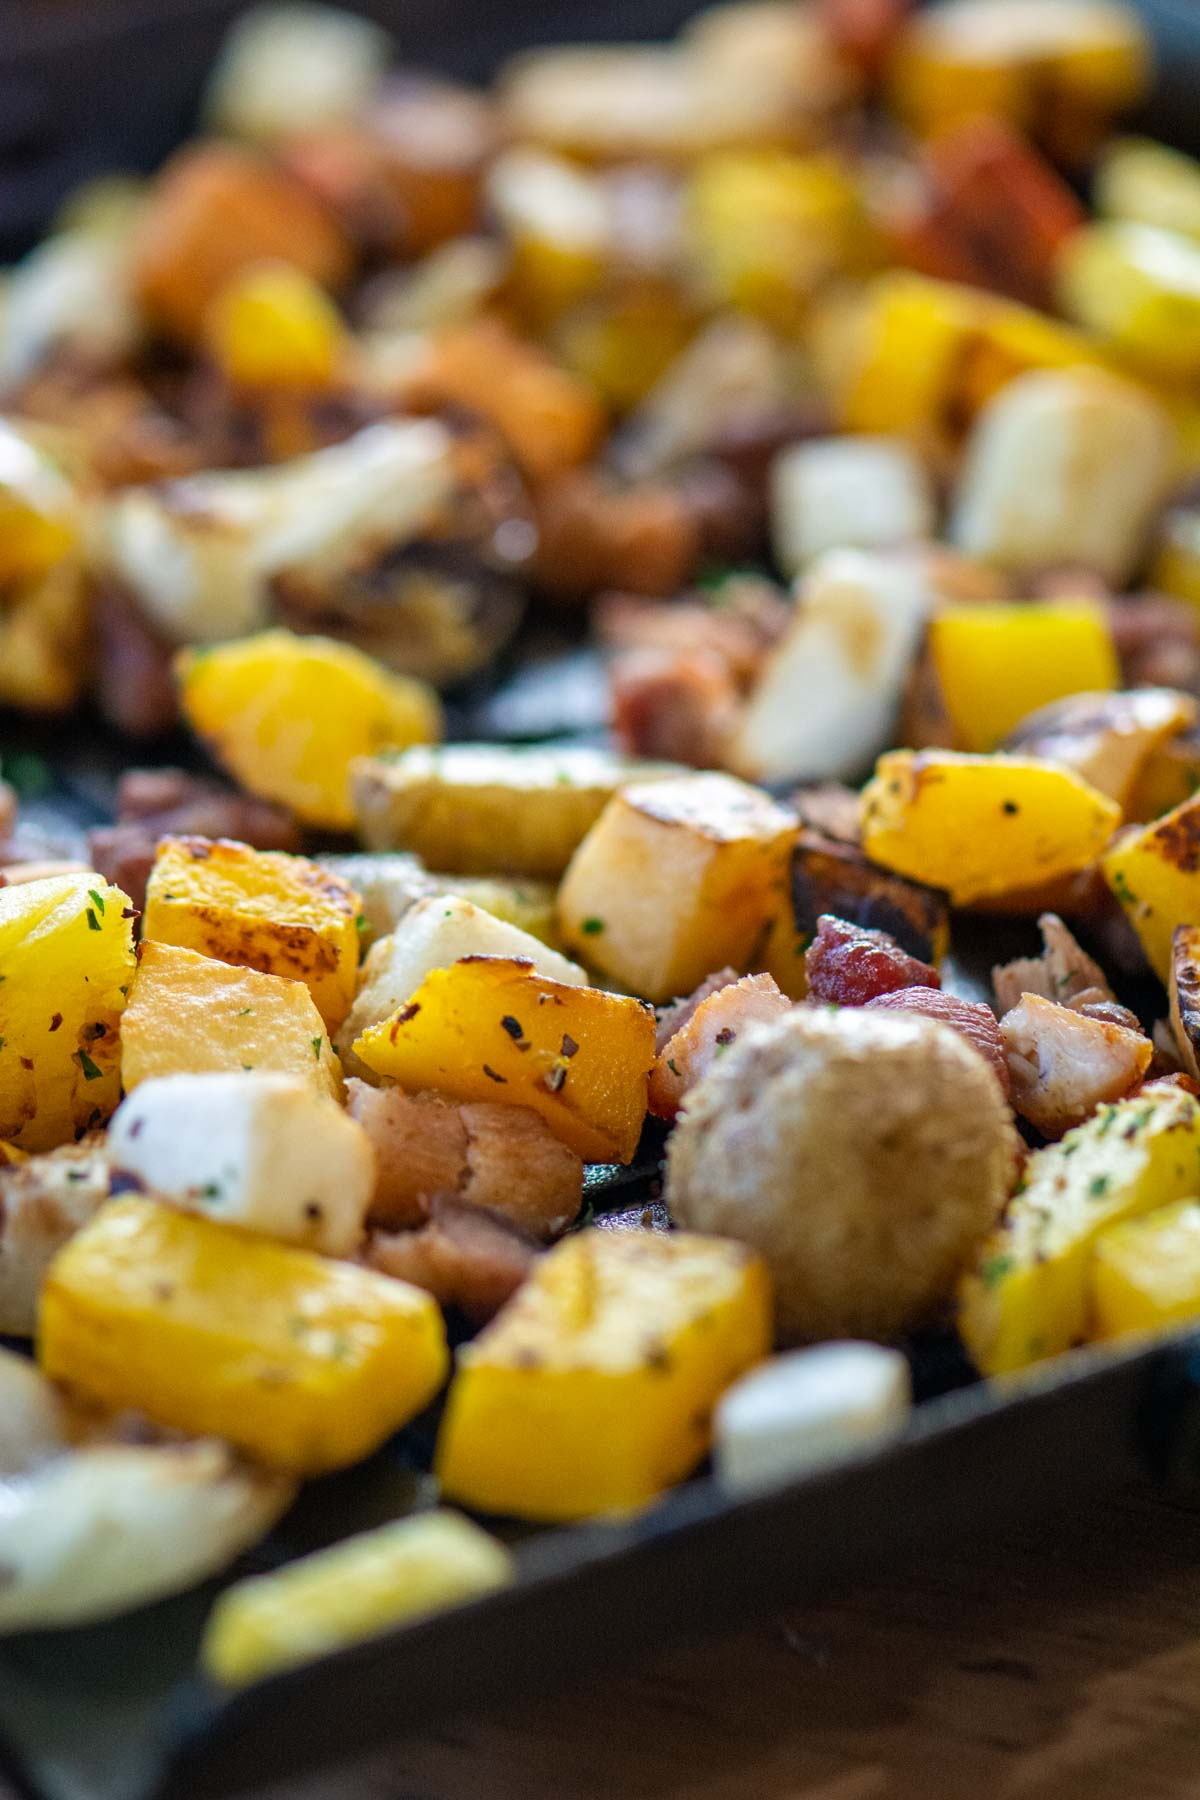 grilled roasted root veggies on a cast iron skillet.